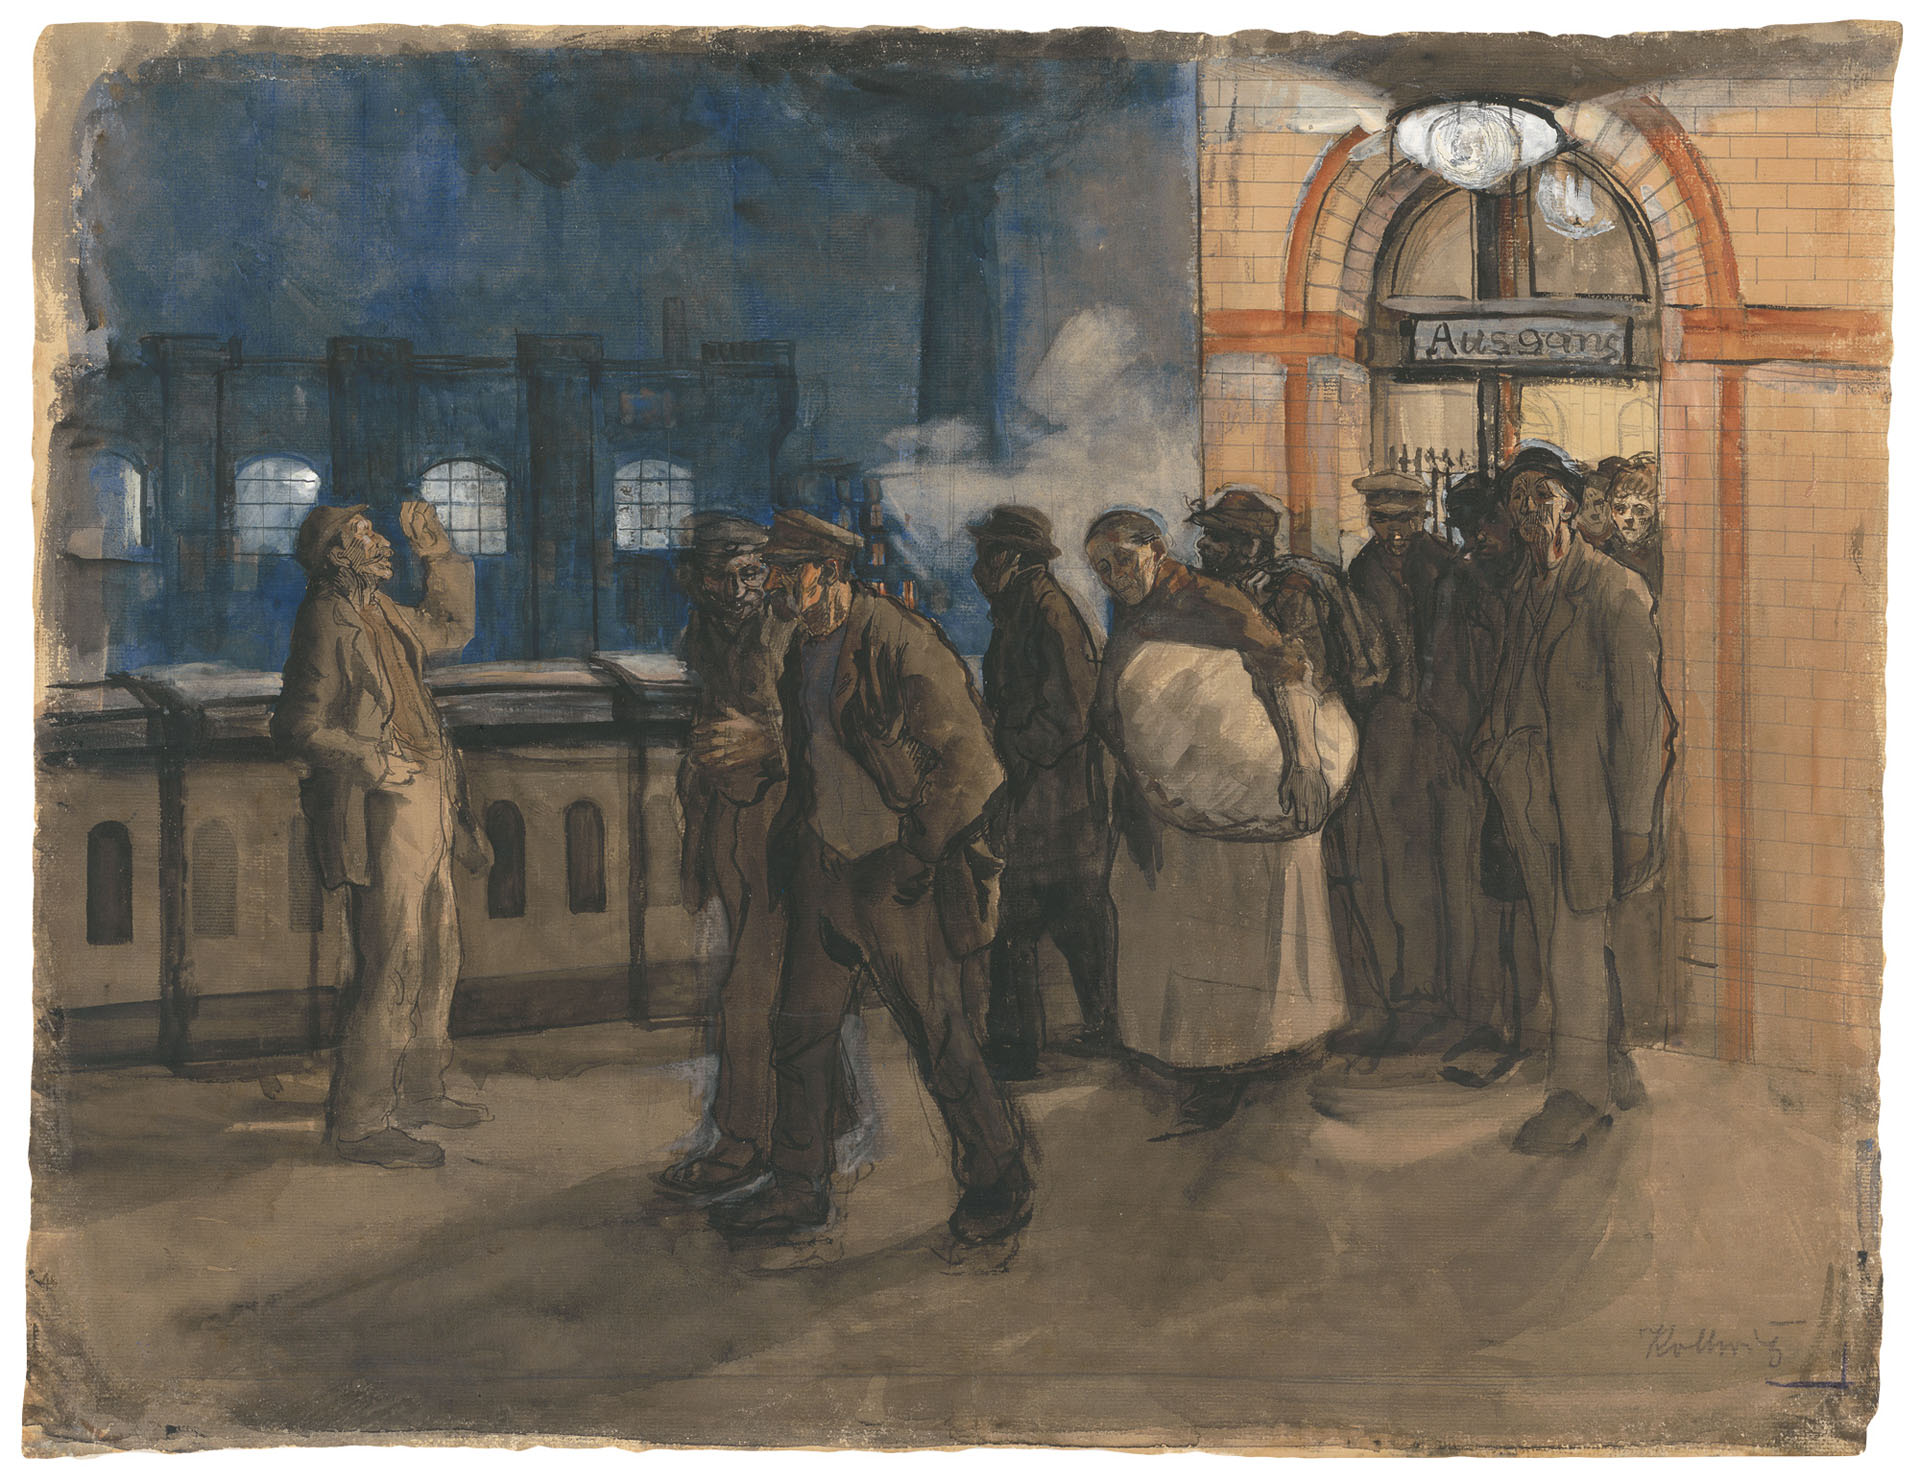 Käthe Kollwitz, Workers Coming from the Station (Prenzlauer Allee Station), 1897-1899, brush and watercolour, heightened with white, on Ingres paper, NT 146, Cologne Kollwitz Collection © Käthe Kollwitz Museum Köln